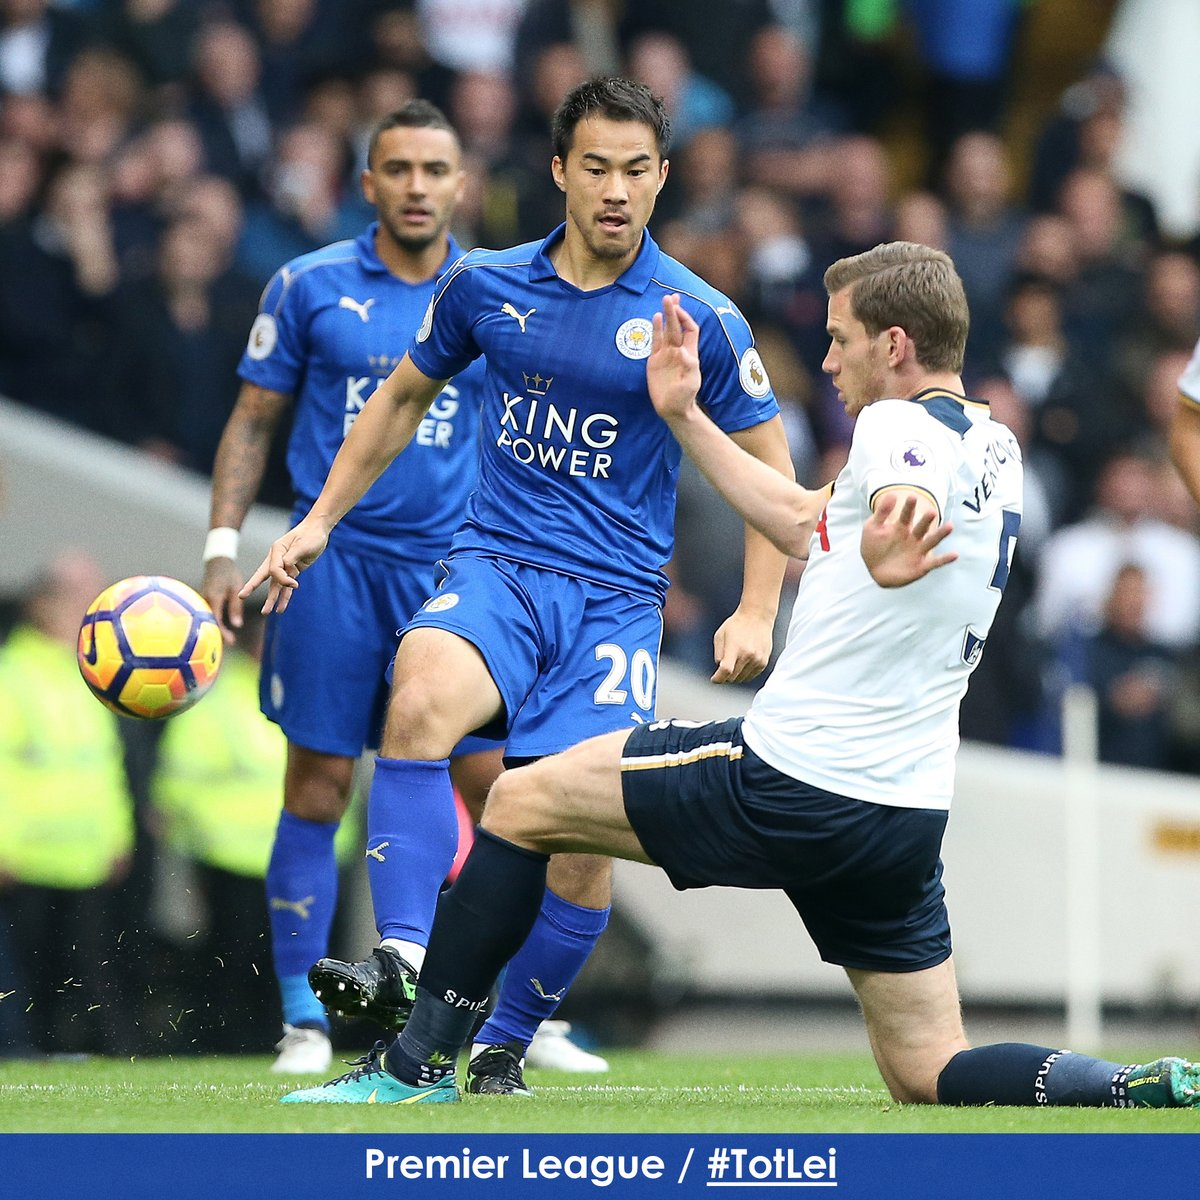 Shinji Okazaki clips the ball past Tottenhams Jan Vertonghen to start an attack for #lcfc